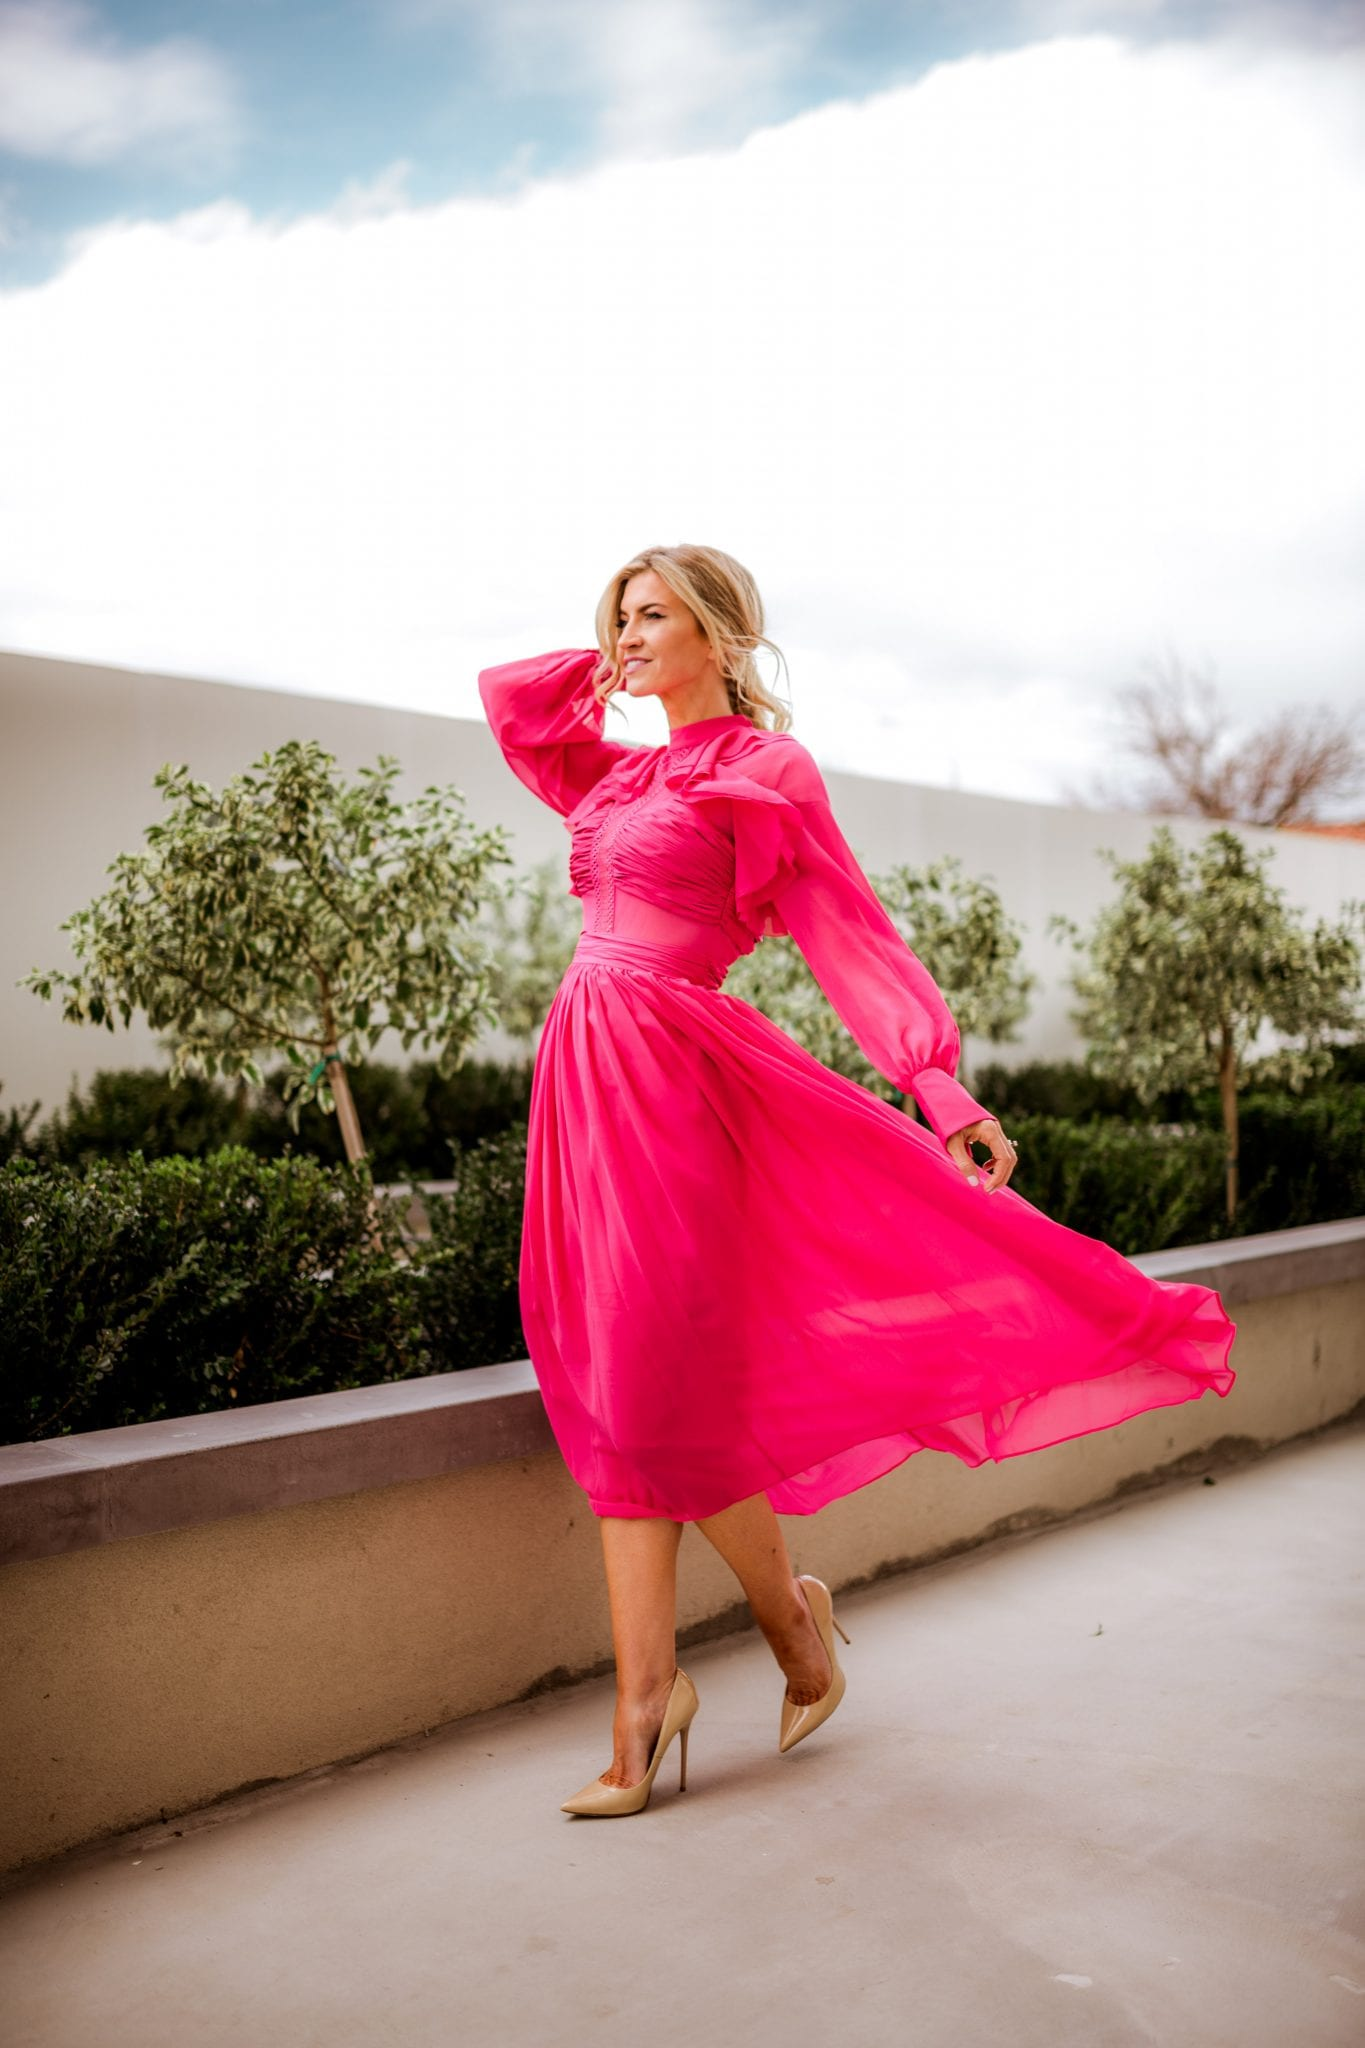 THE HOT PINK TREND FOR SPRING: MY TOP 5 PICKS & HOW TO WEAR THEM